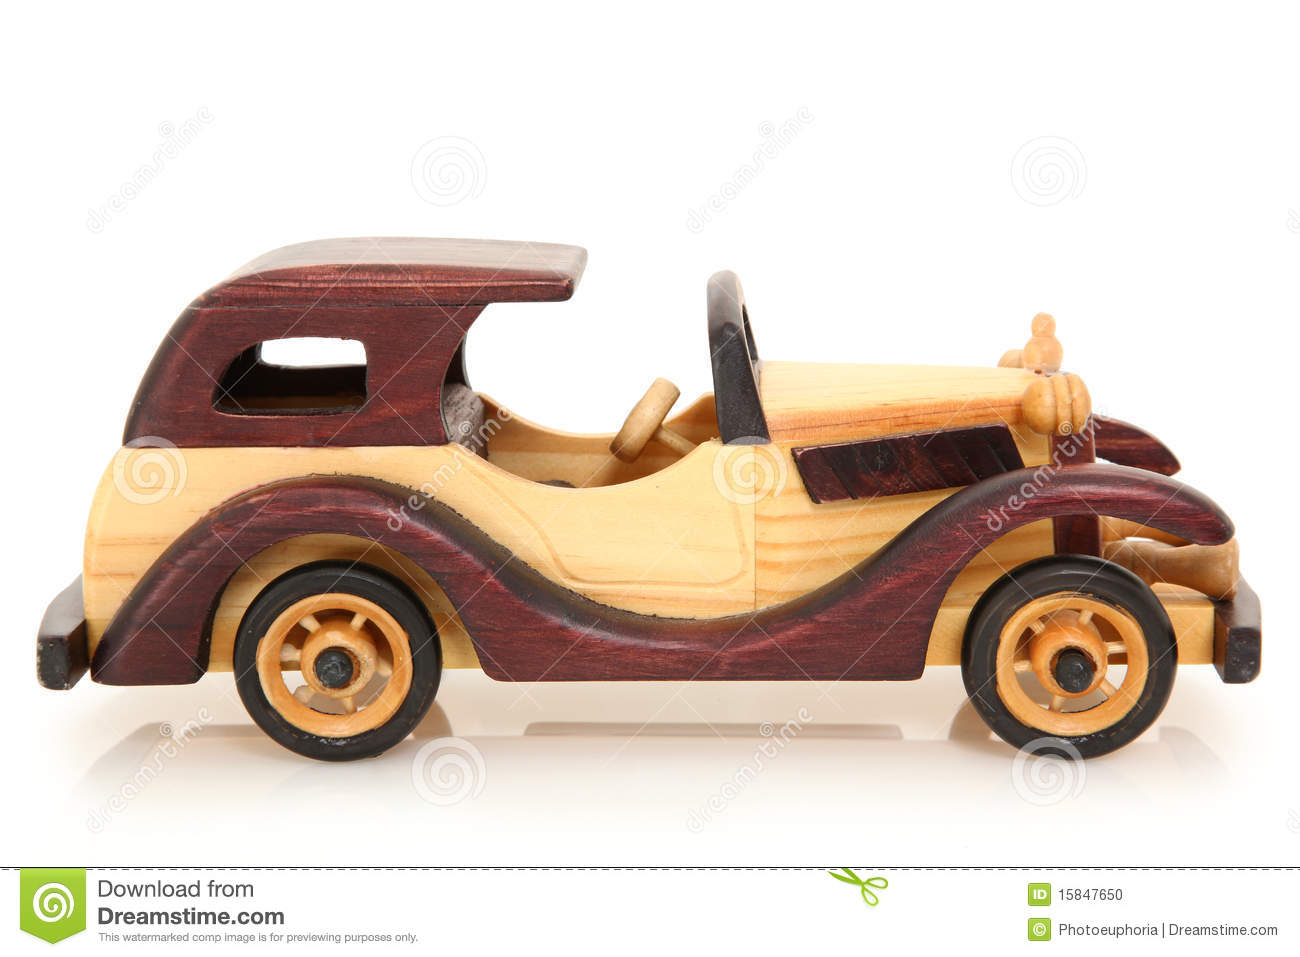 Toy Wooden Car Stock Photo - Image: 15847650